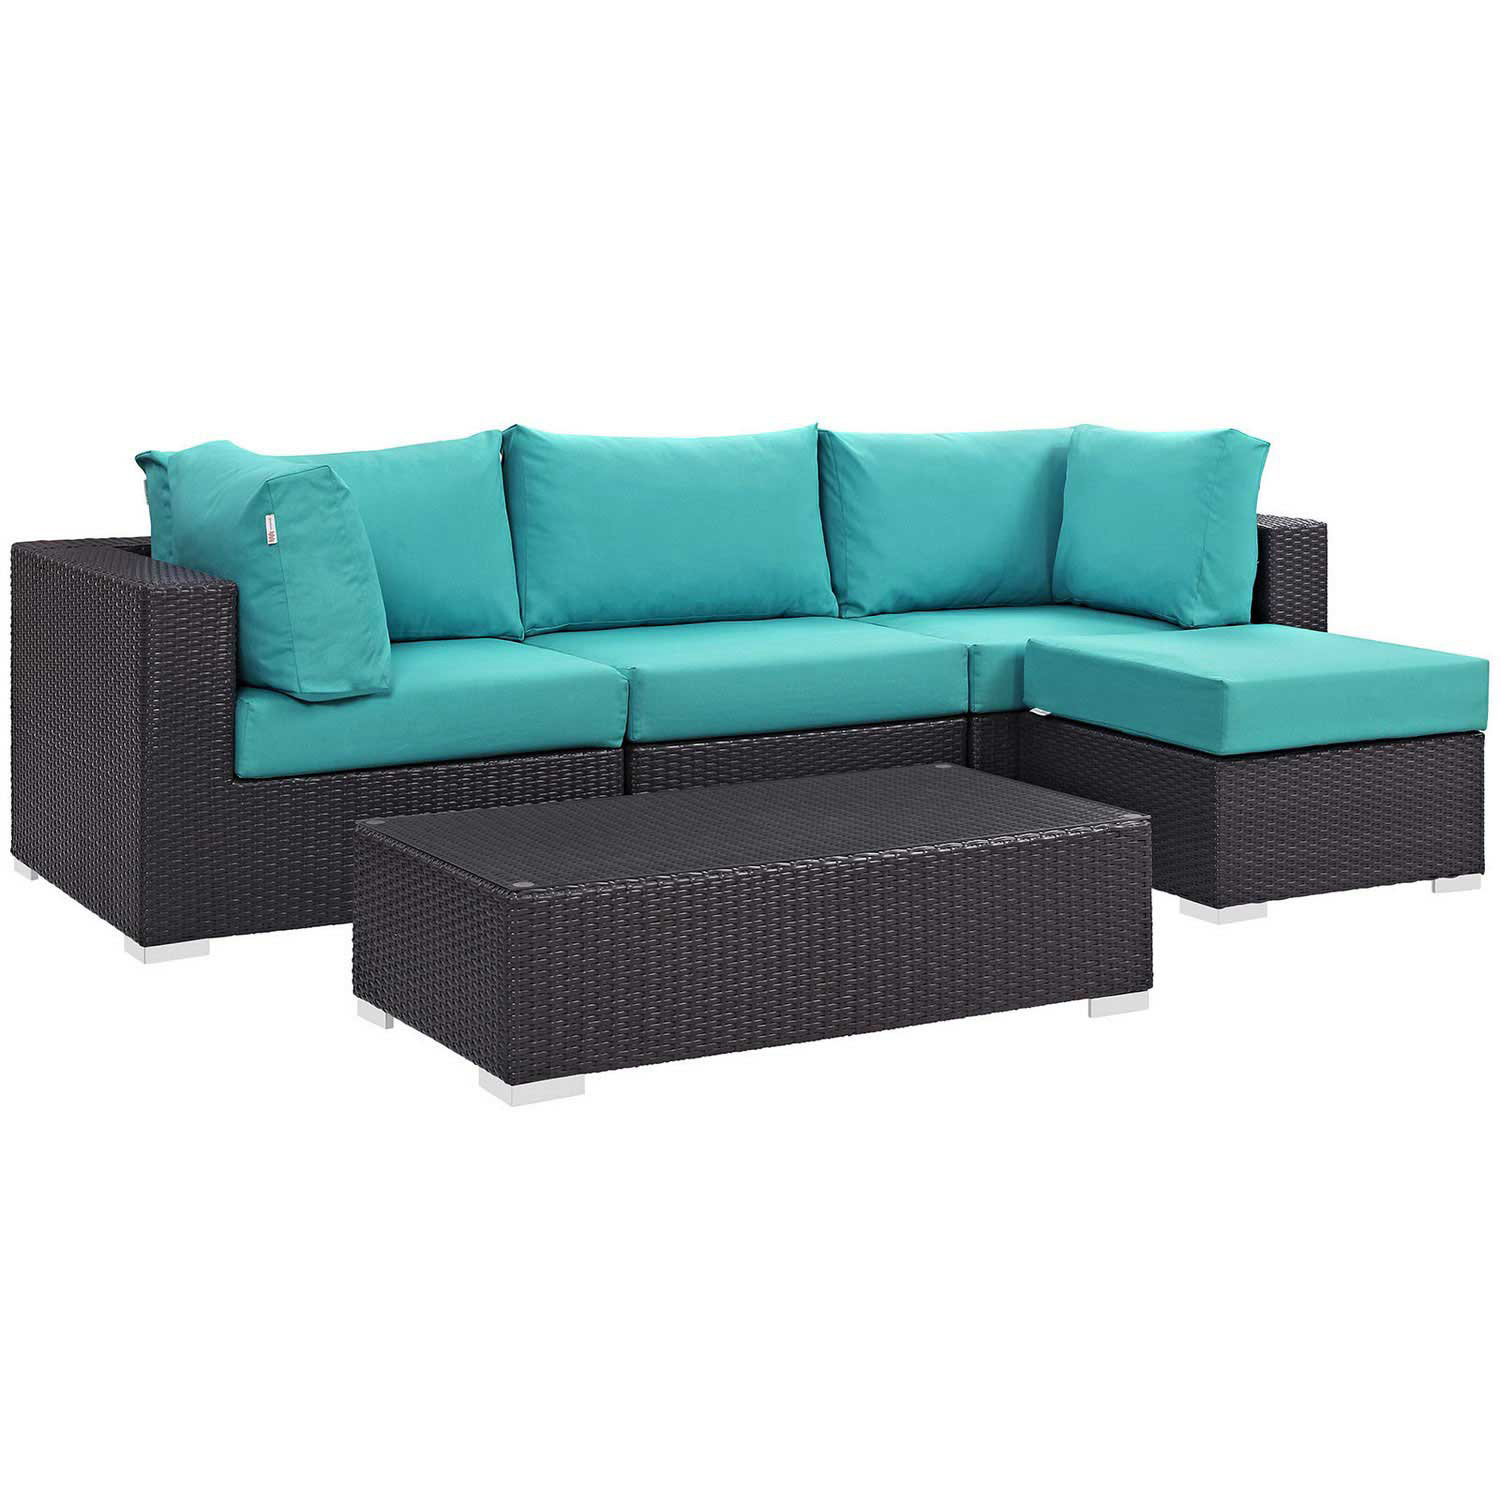 Modway Convene 5 Piece Outdoor Patio Sectional Set - Espresso Turquoise